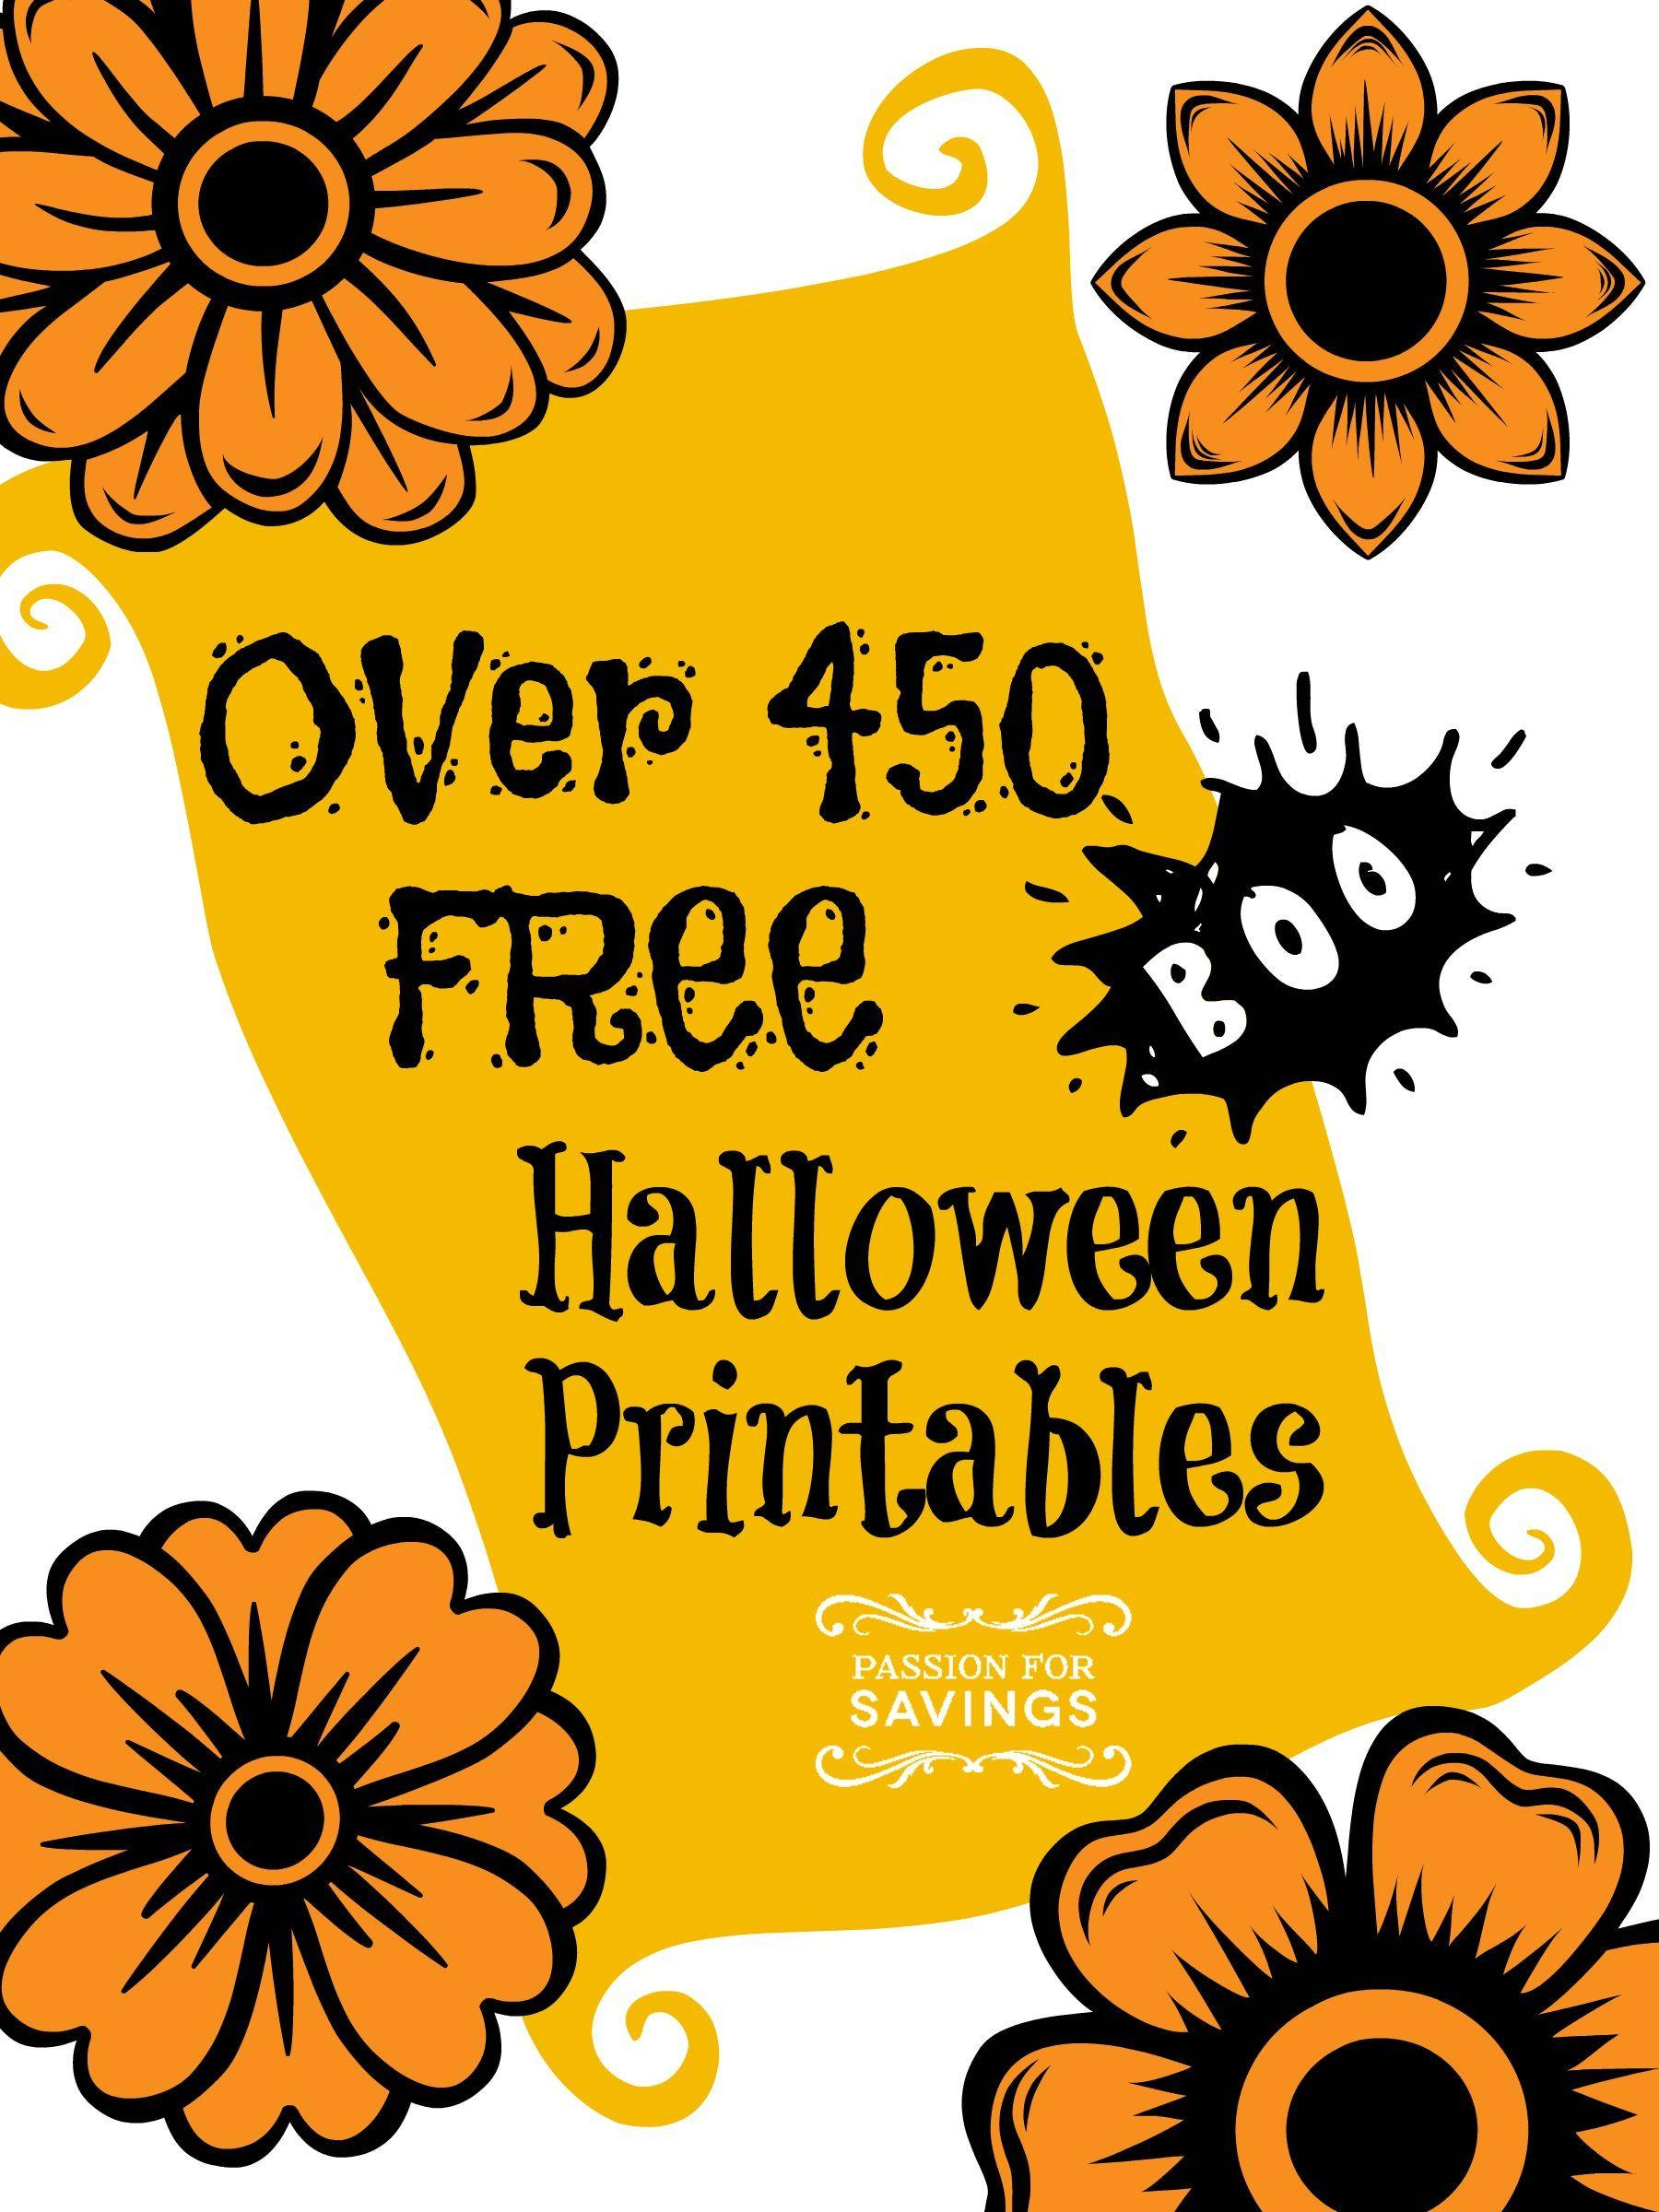 This is an image of Comprehensive Halloween Pictures Printable